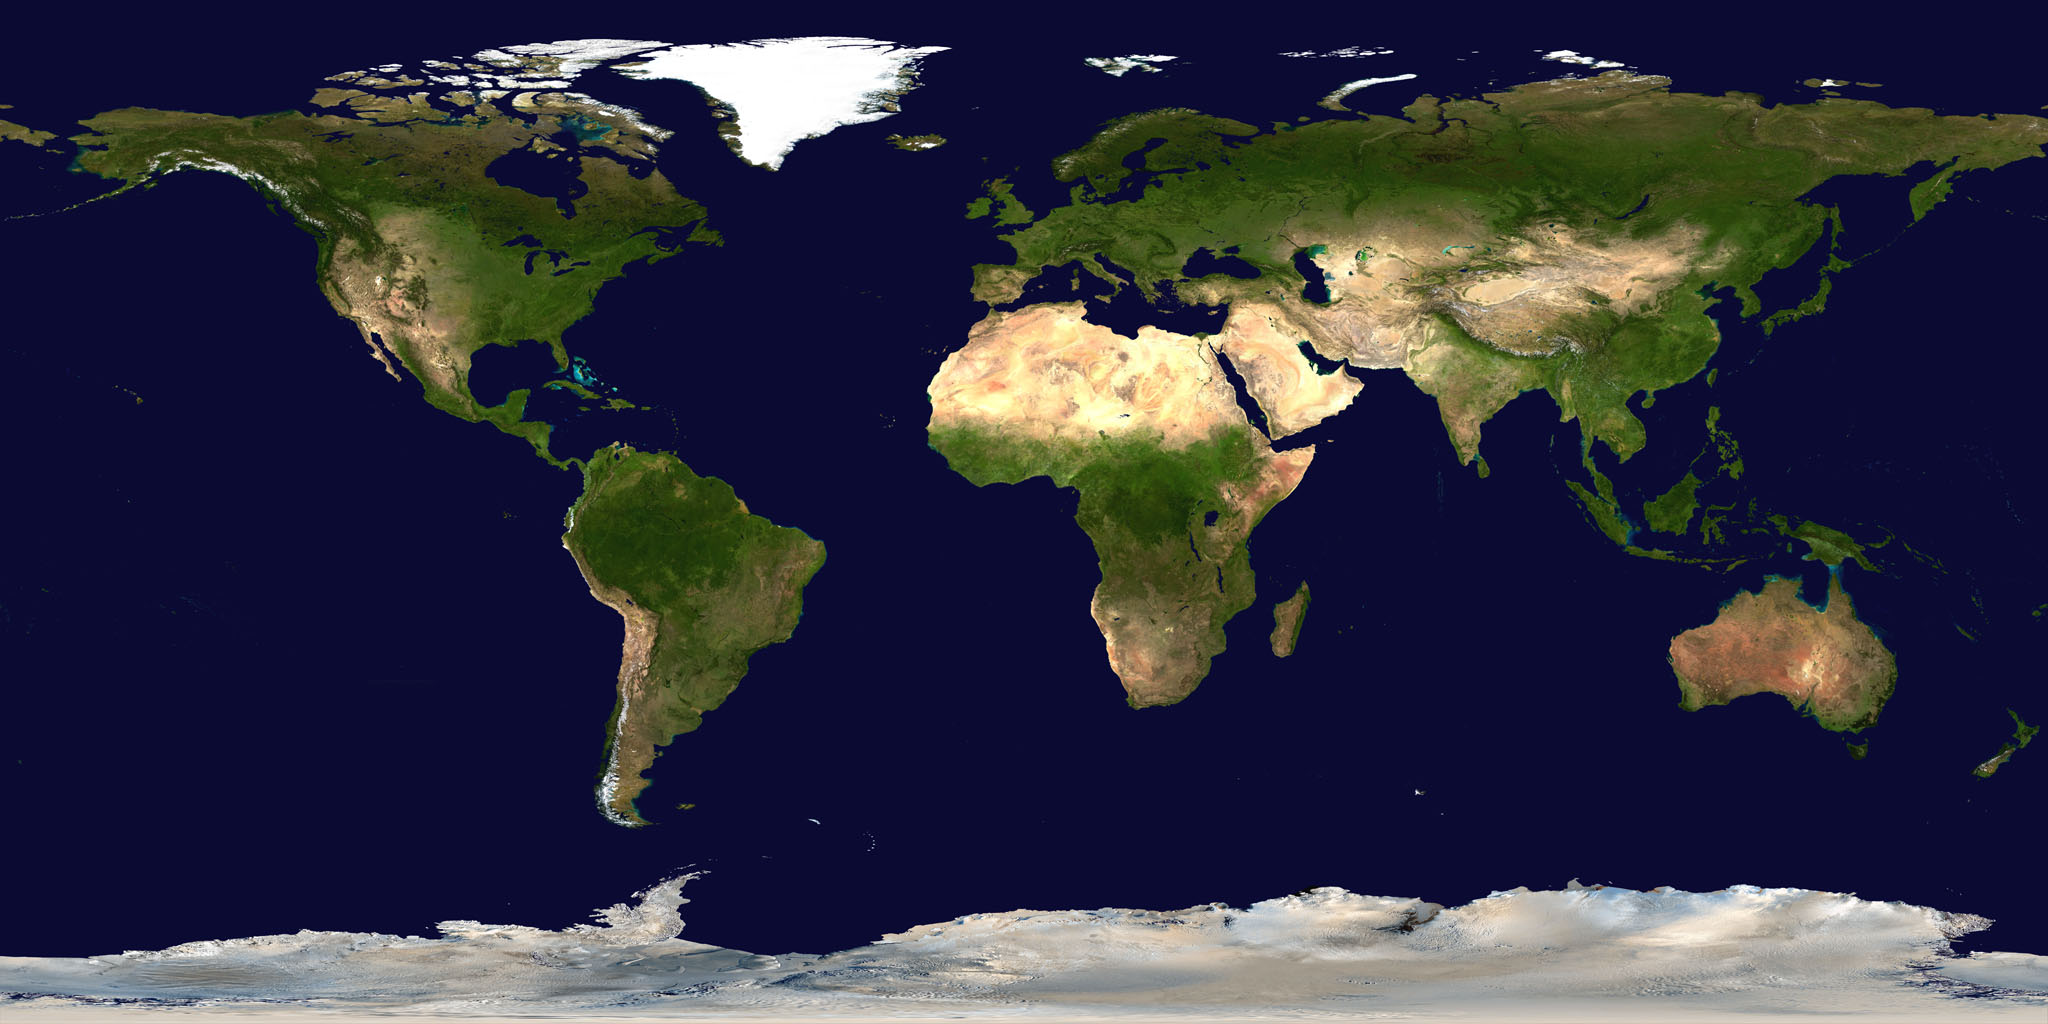 Satellite map of the world (summer)